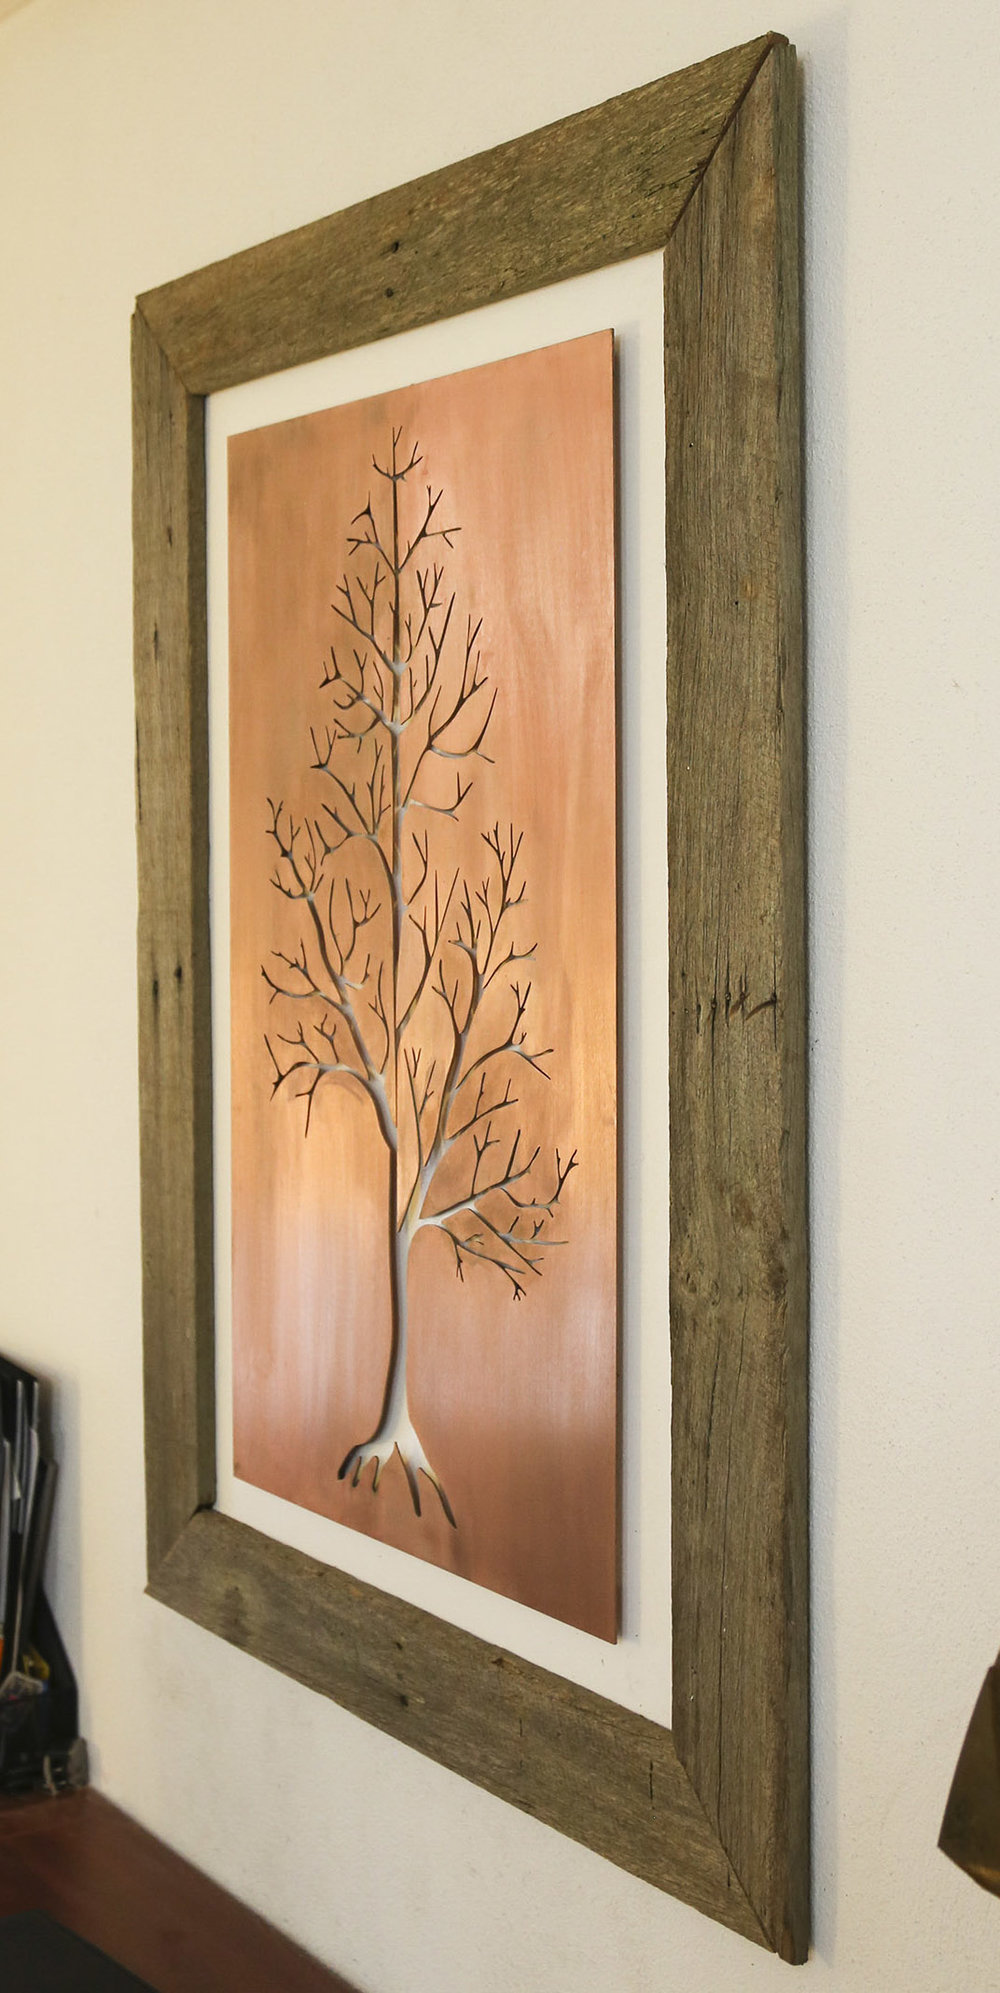 Inner Tree - Copper Cut & local Red Hill fence paling timber